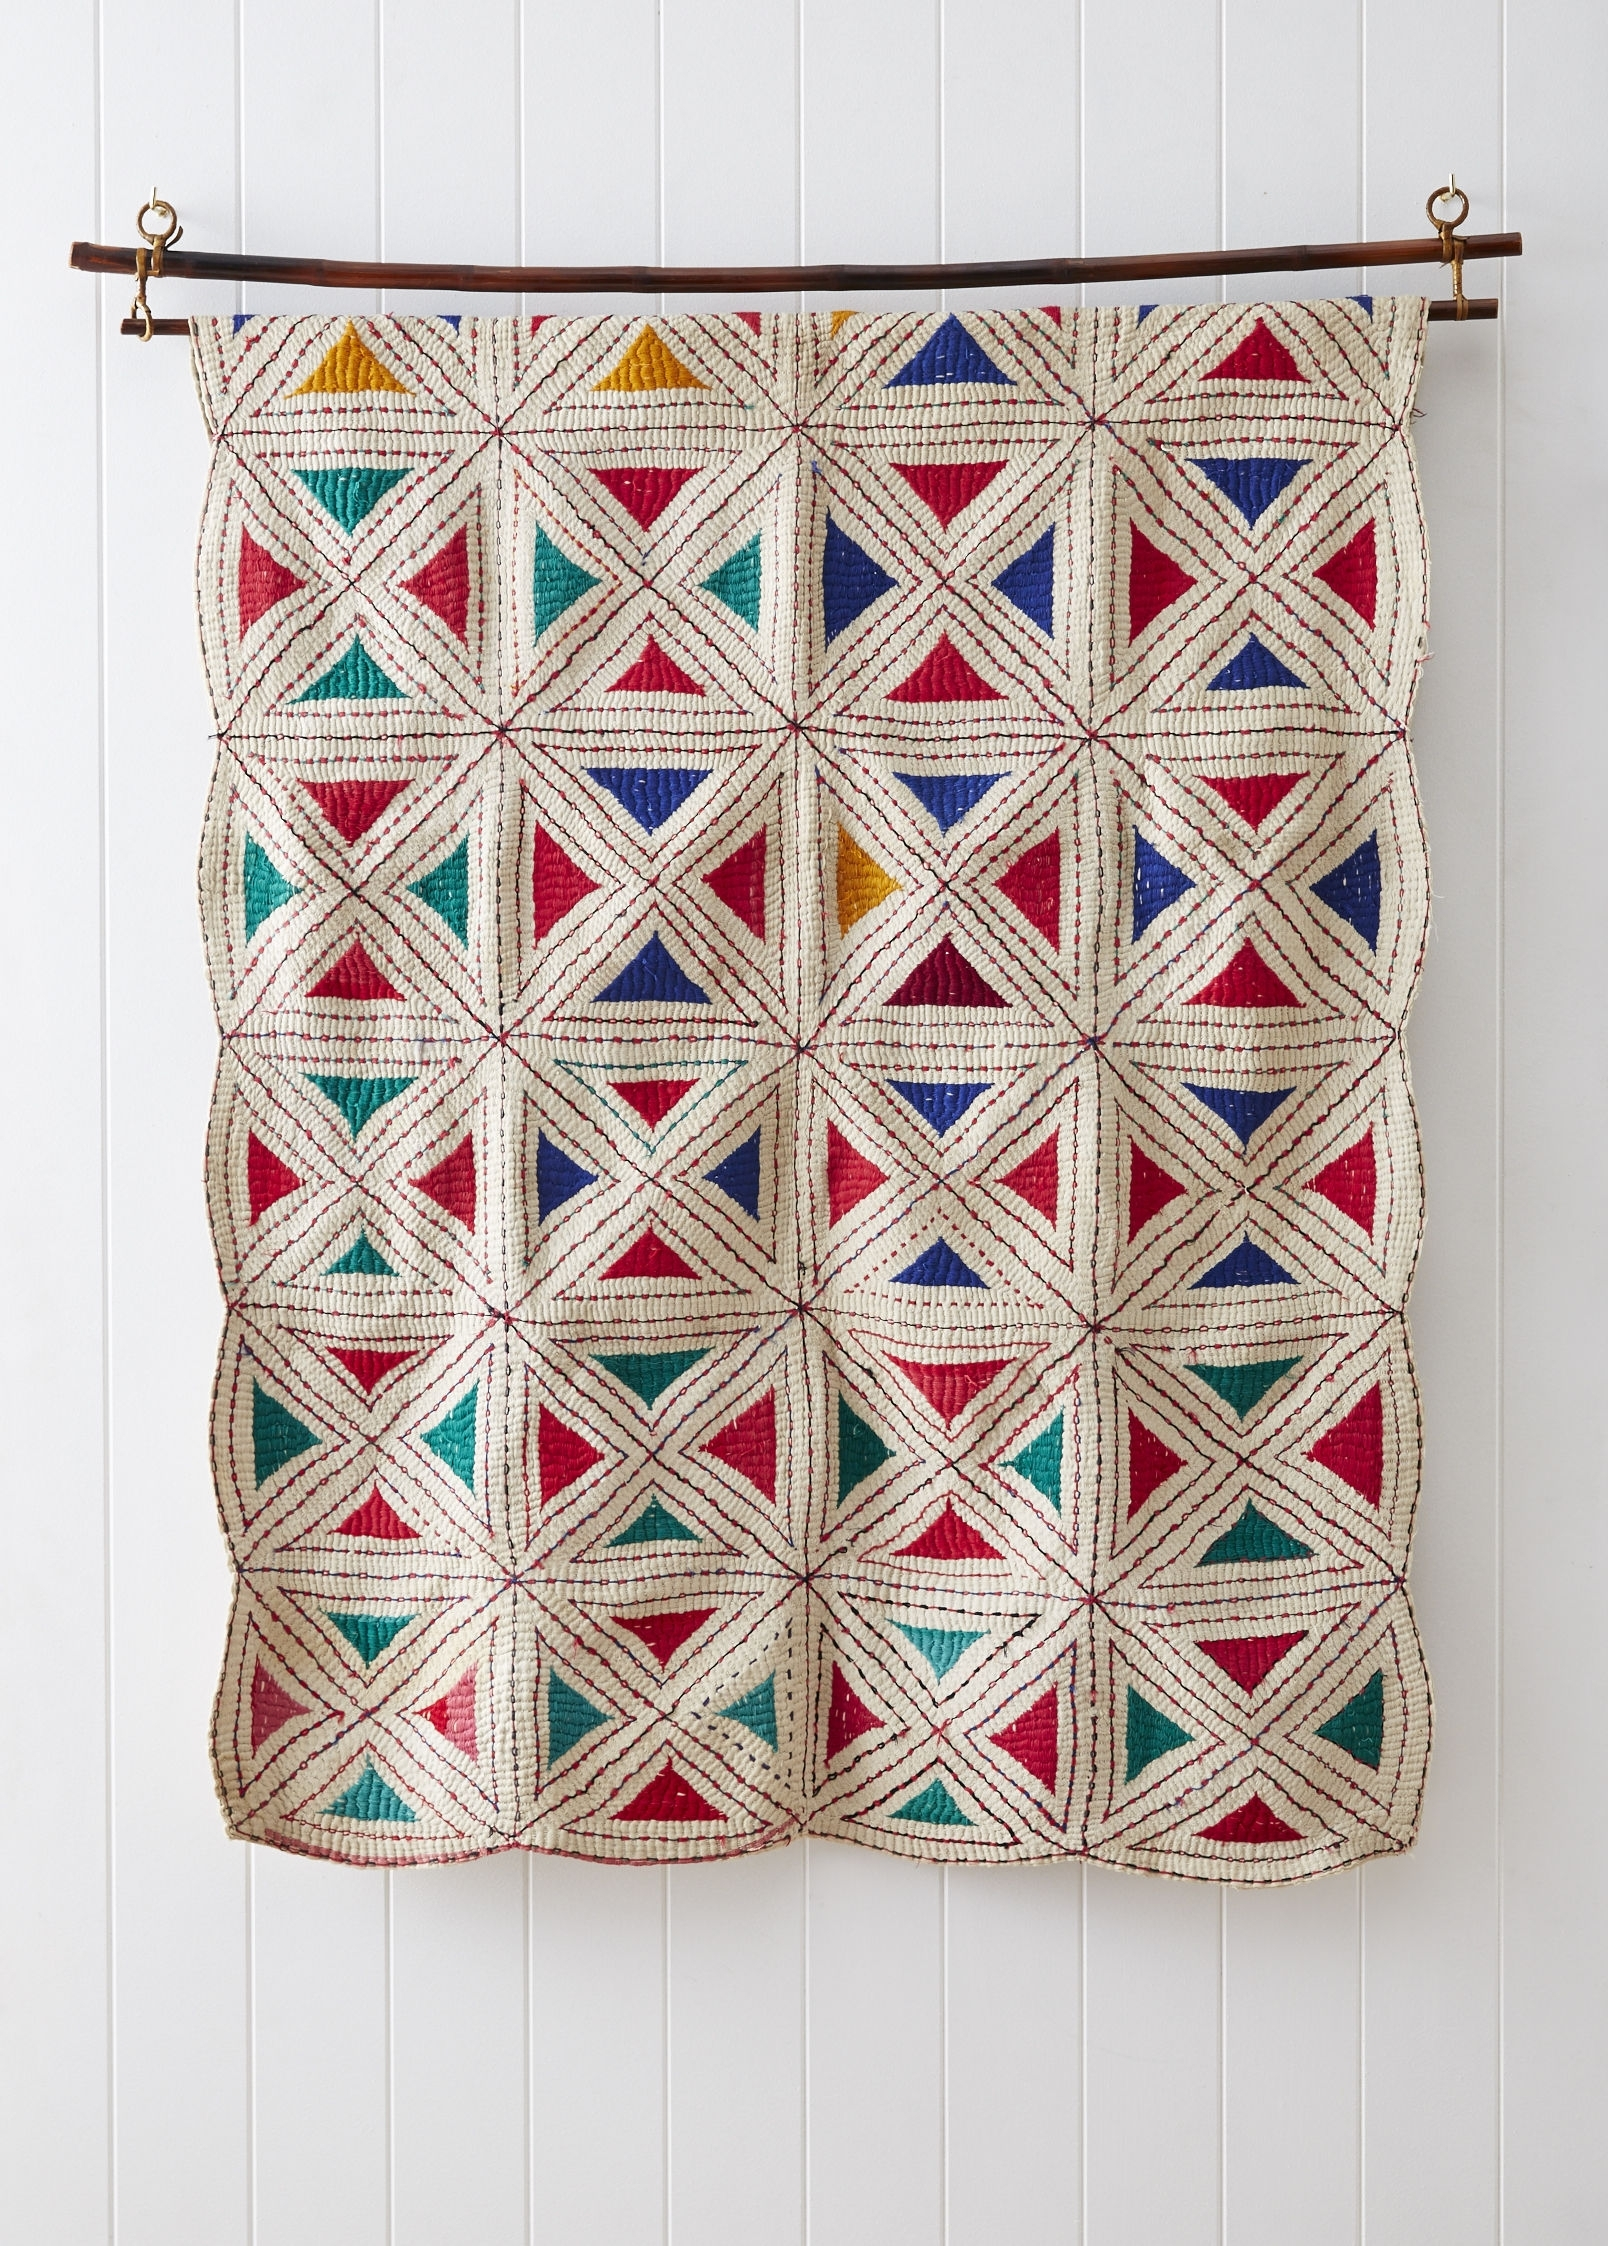 Kantha Stitched Wall Hanging For Most Popular Hanging Textile Wall Art (View 3 of 15)